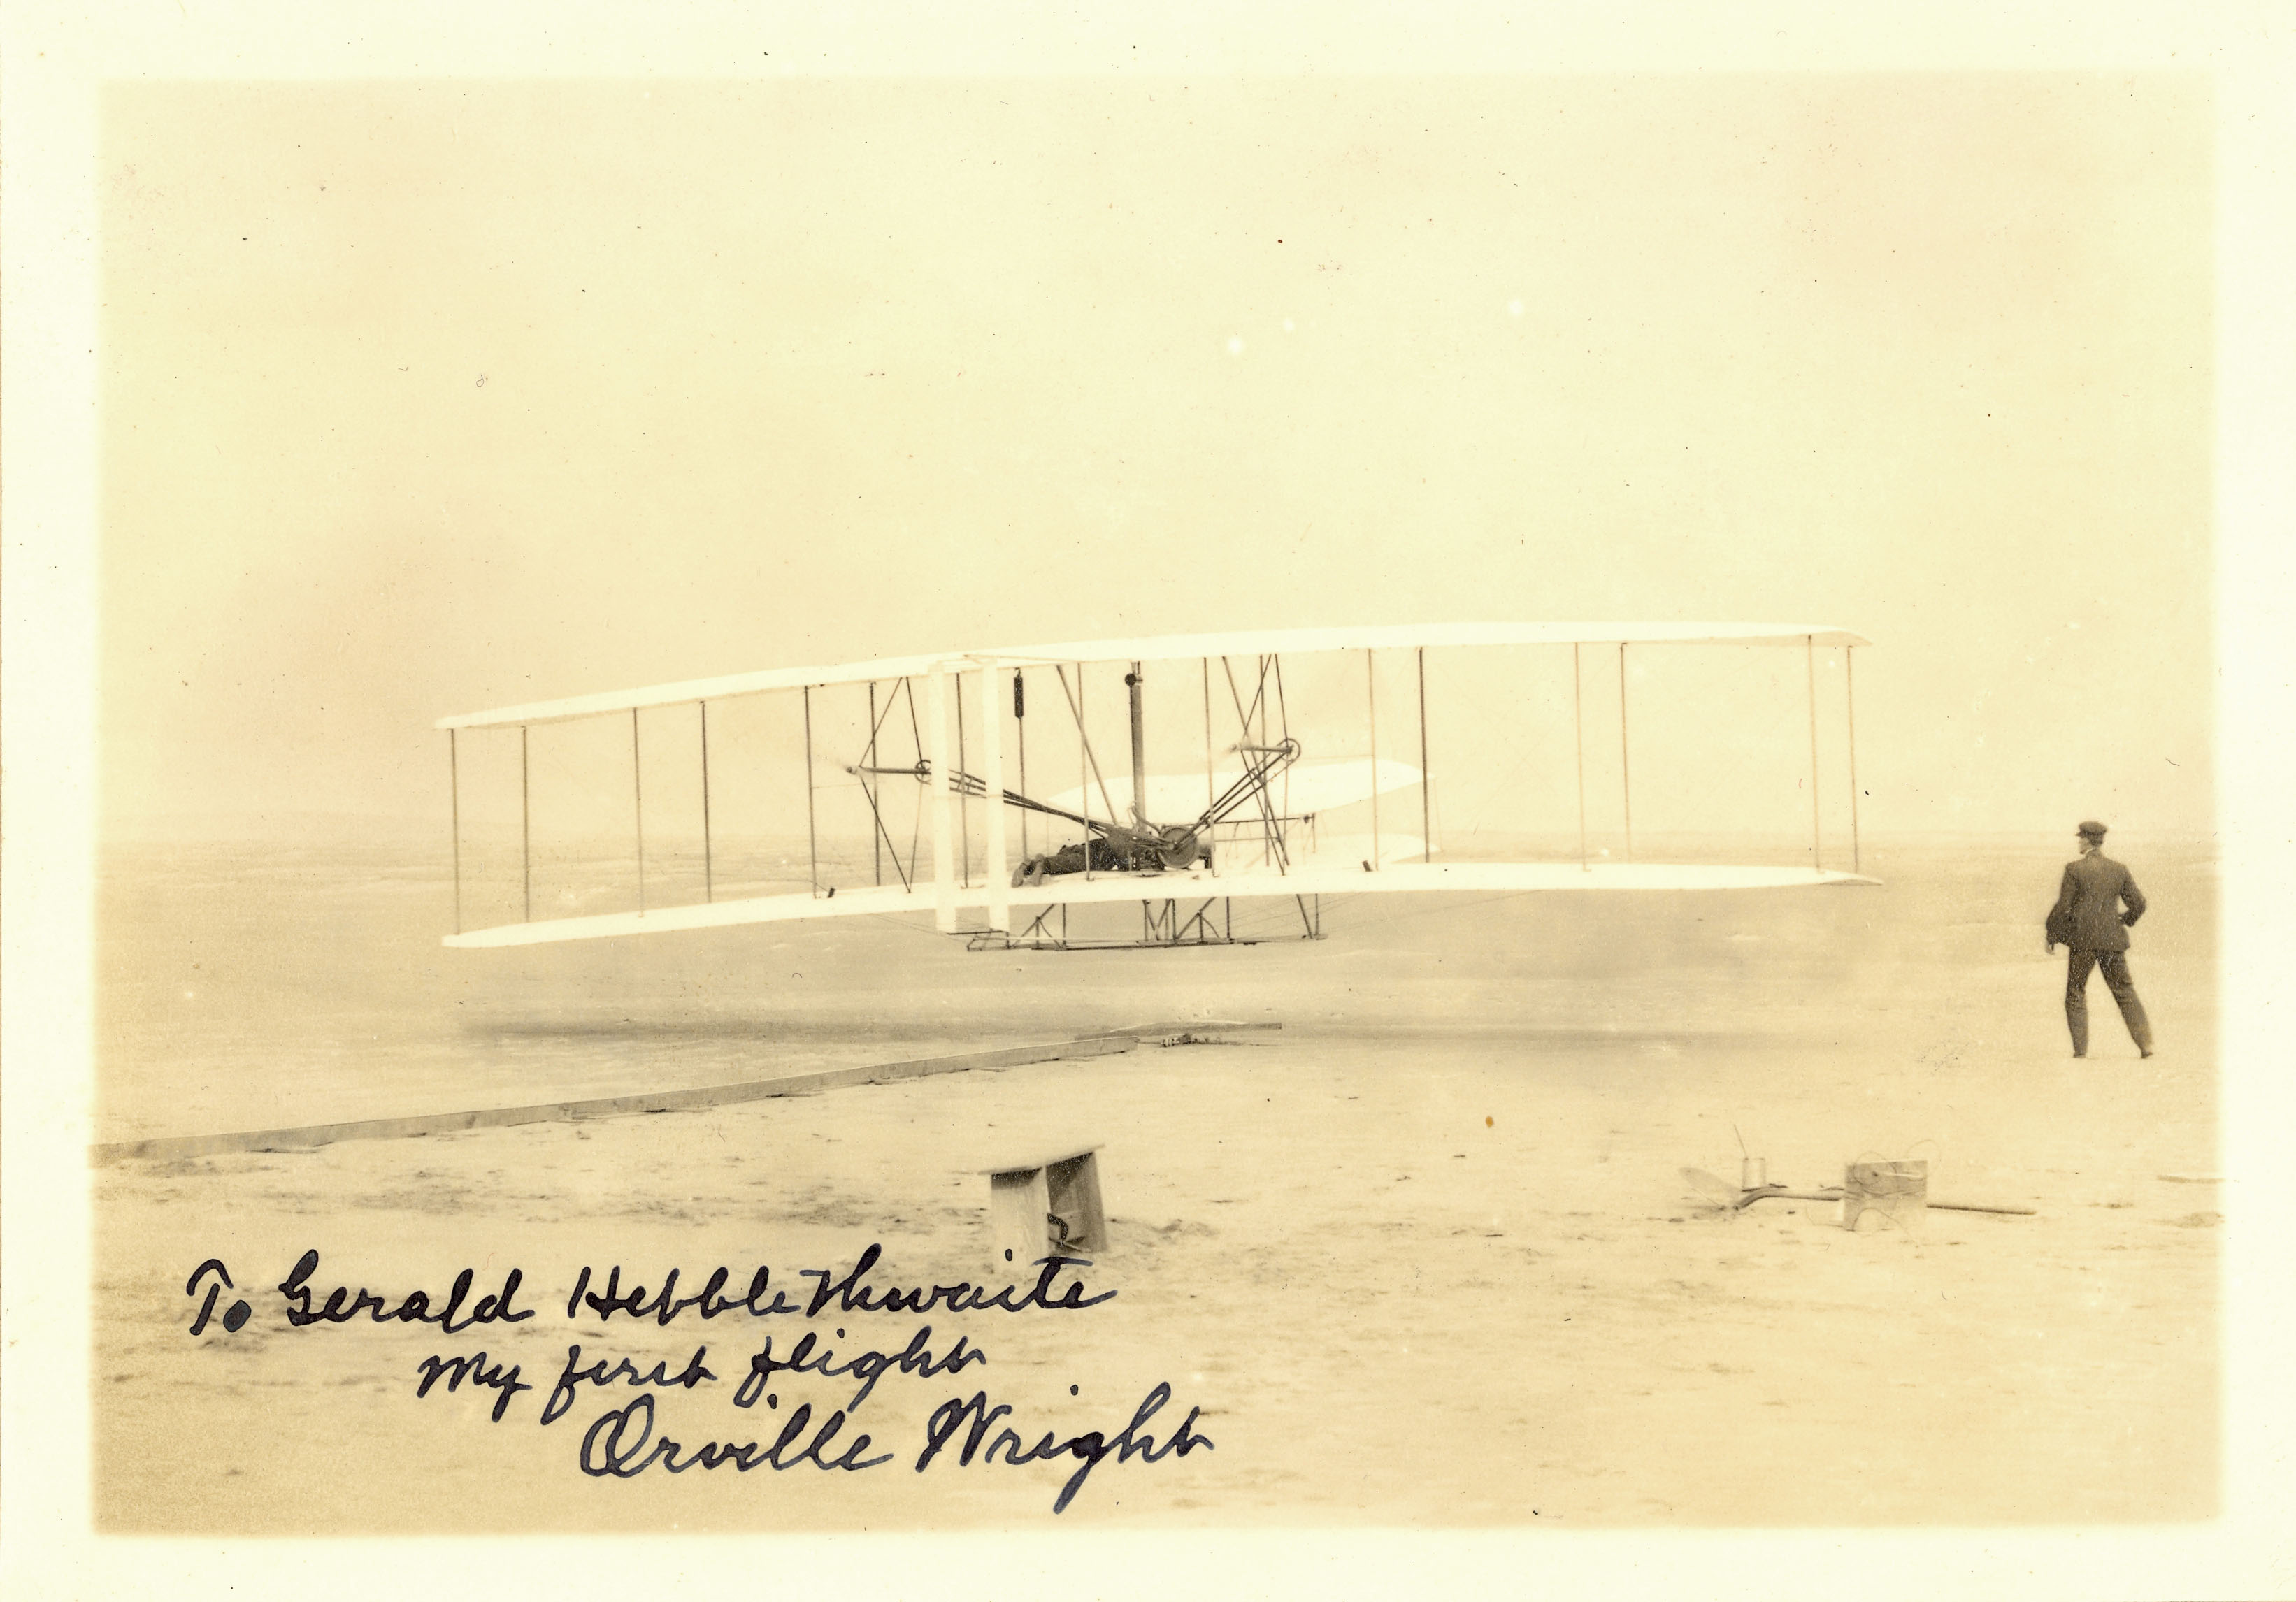 Wright Brothers Flight with lot detail - wright brothers first flight signed photo and collection!